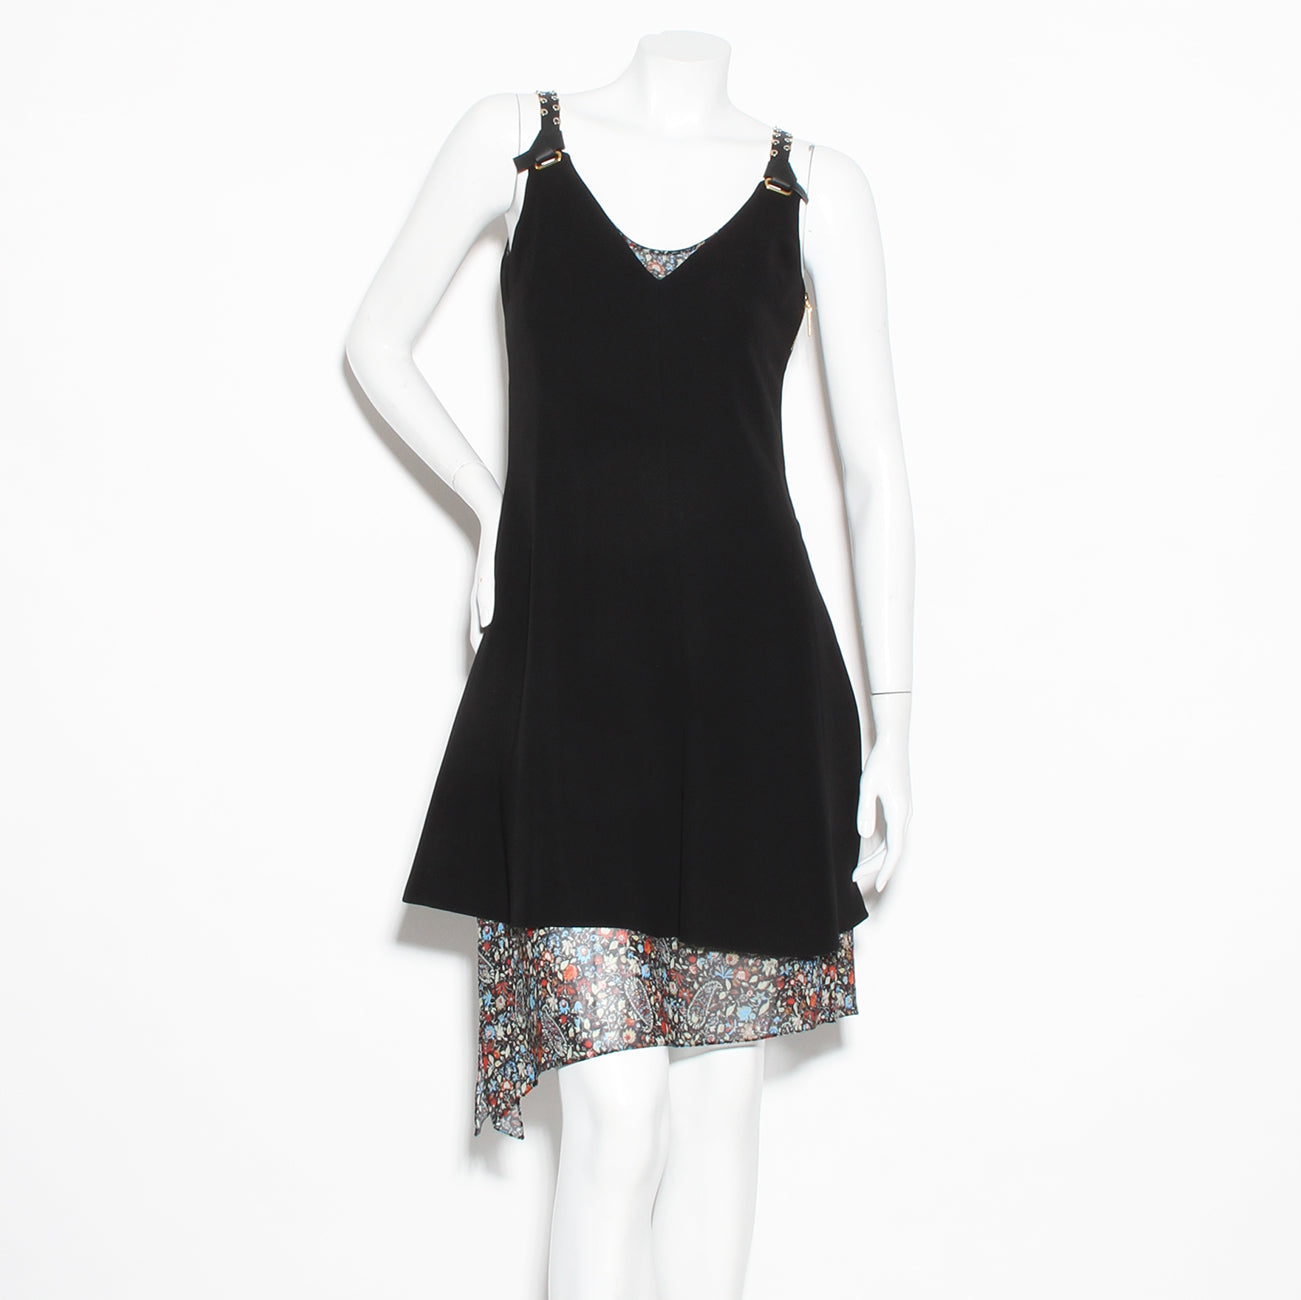 LV Leather Strap Floral Dress